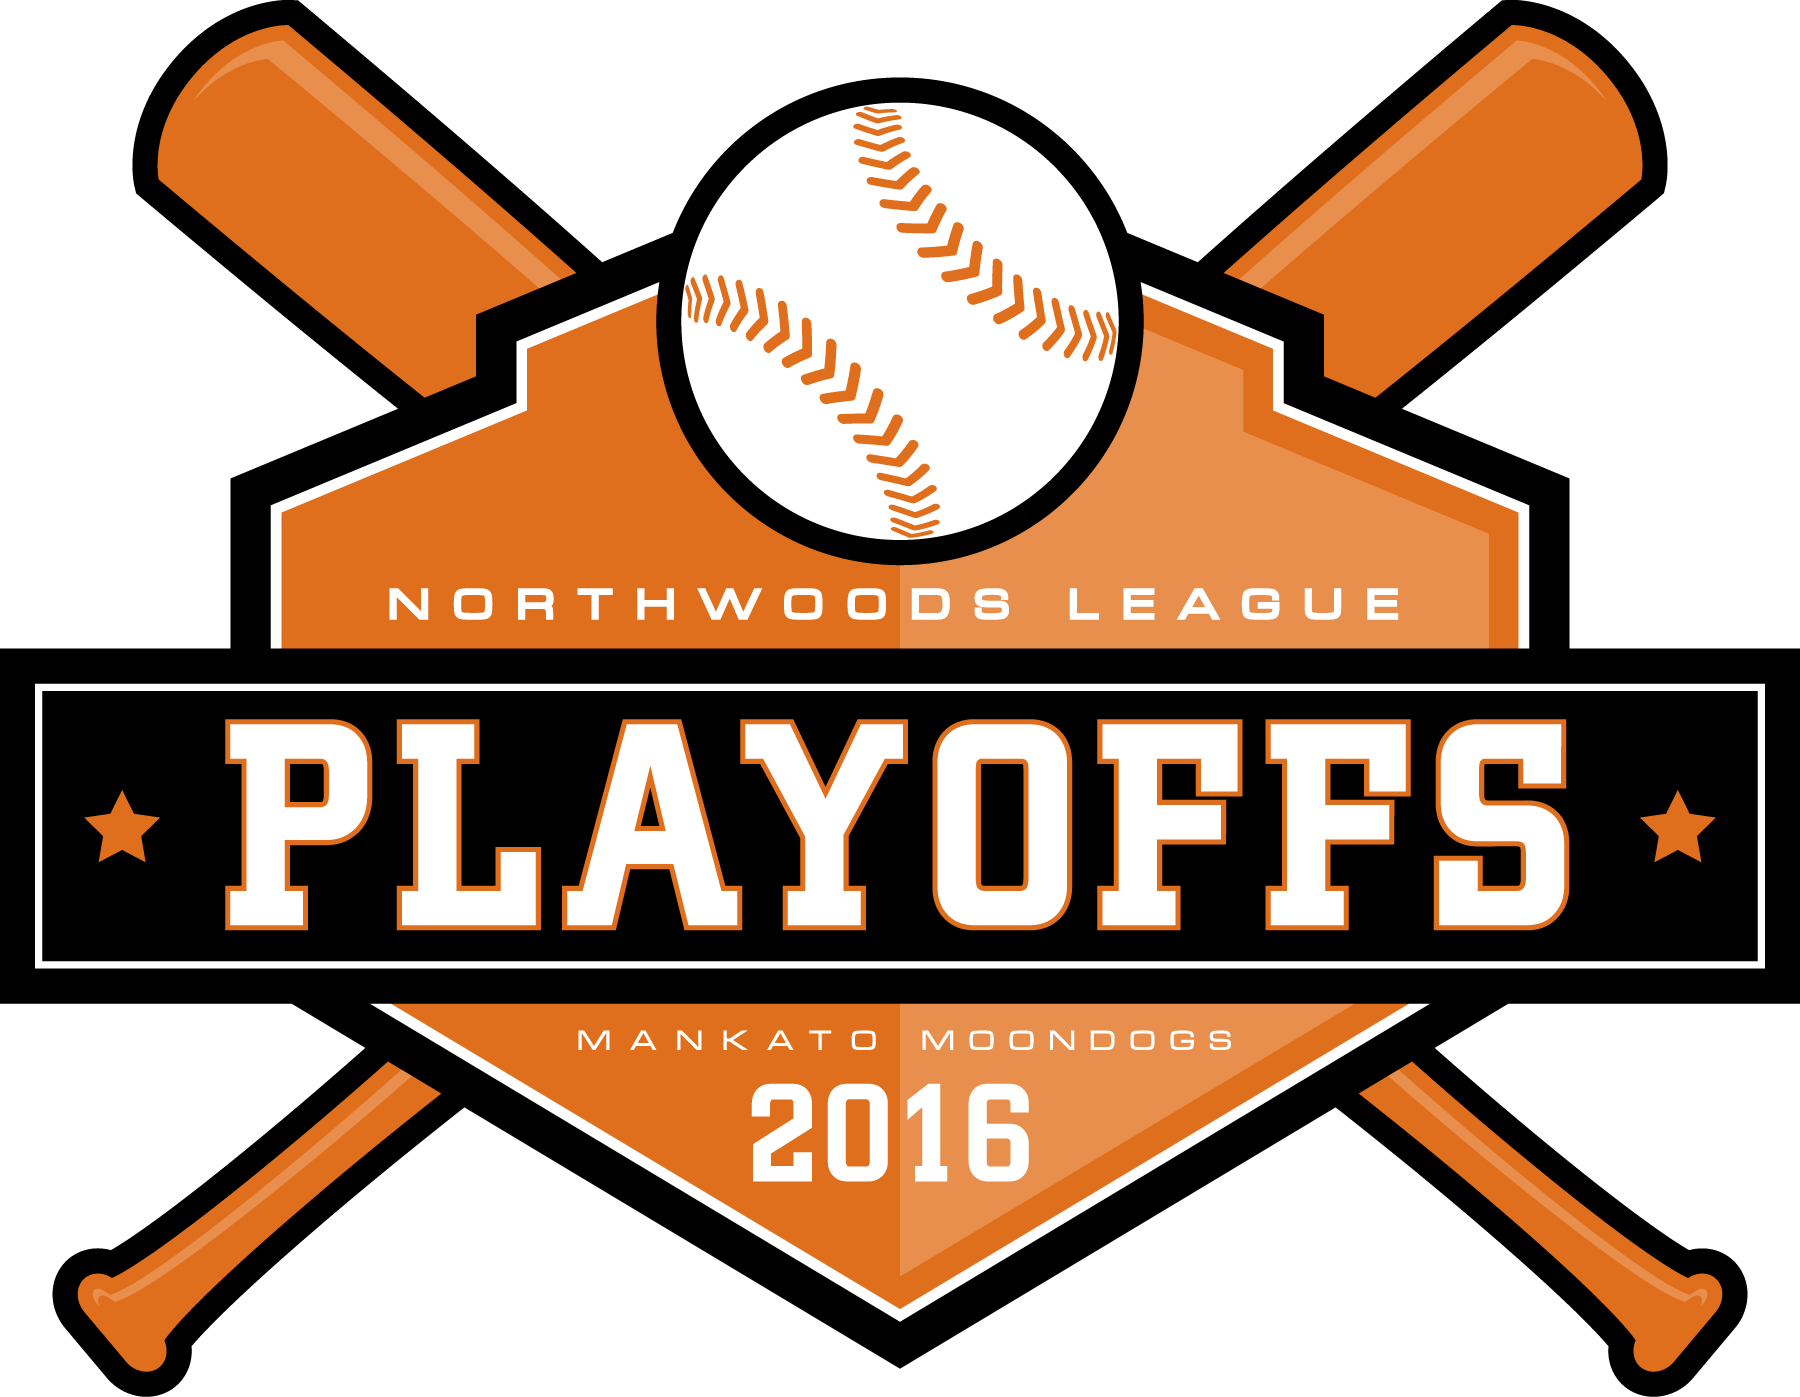 Baseball first plate clipart image free download MoonDogs Clinch 2016 Playoff Berth - Mankato MoonDogs : Mankato MoonDogs image free download